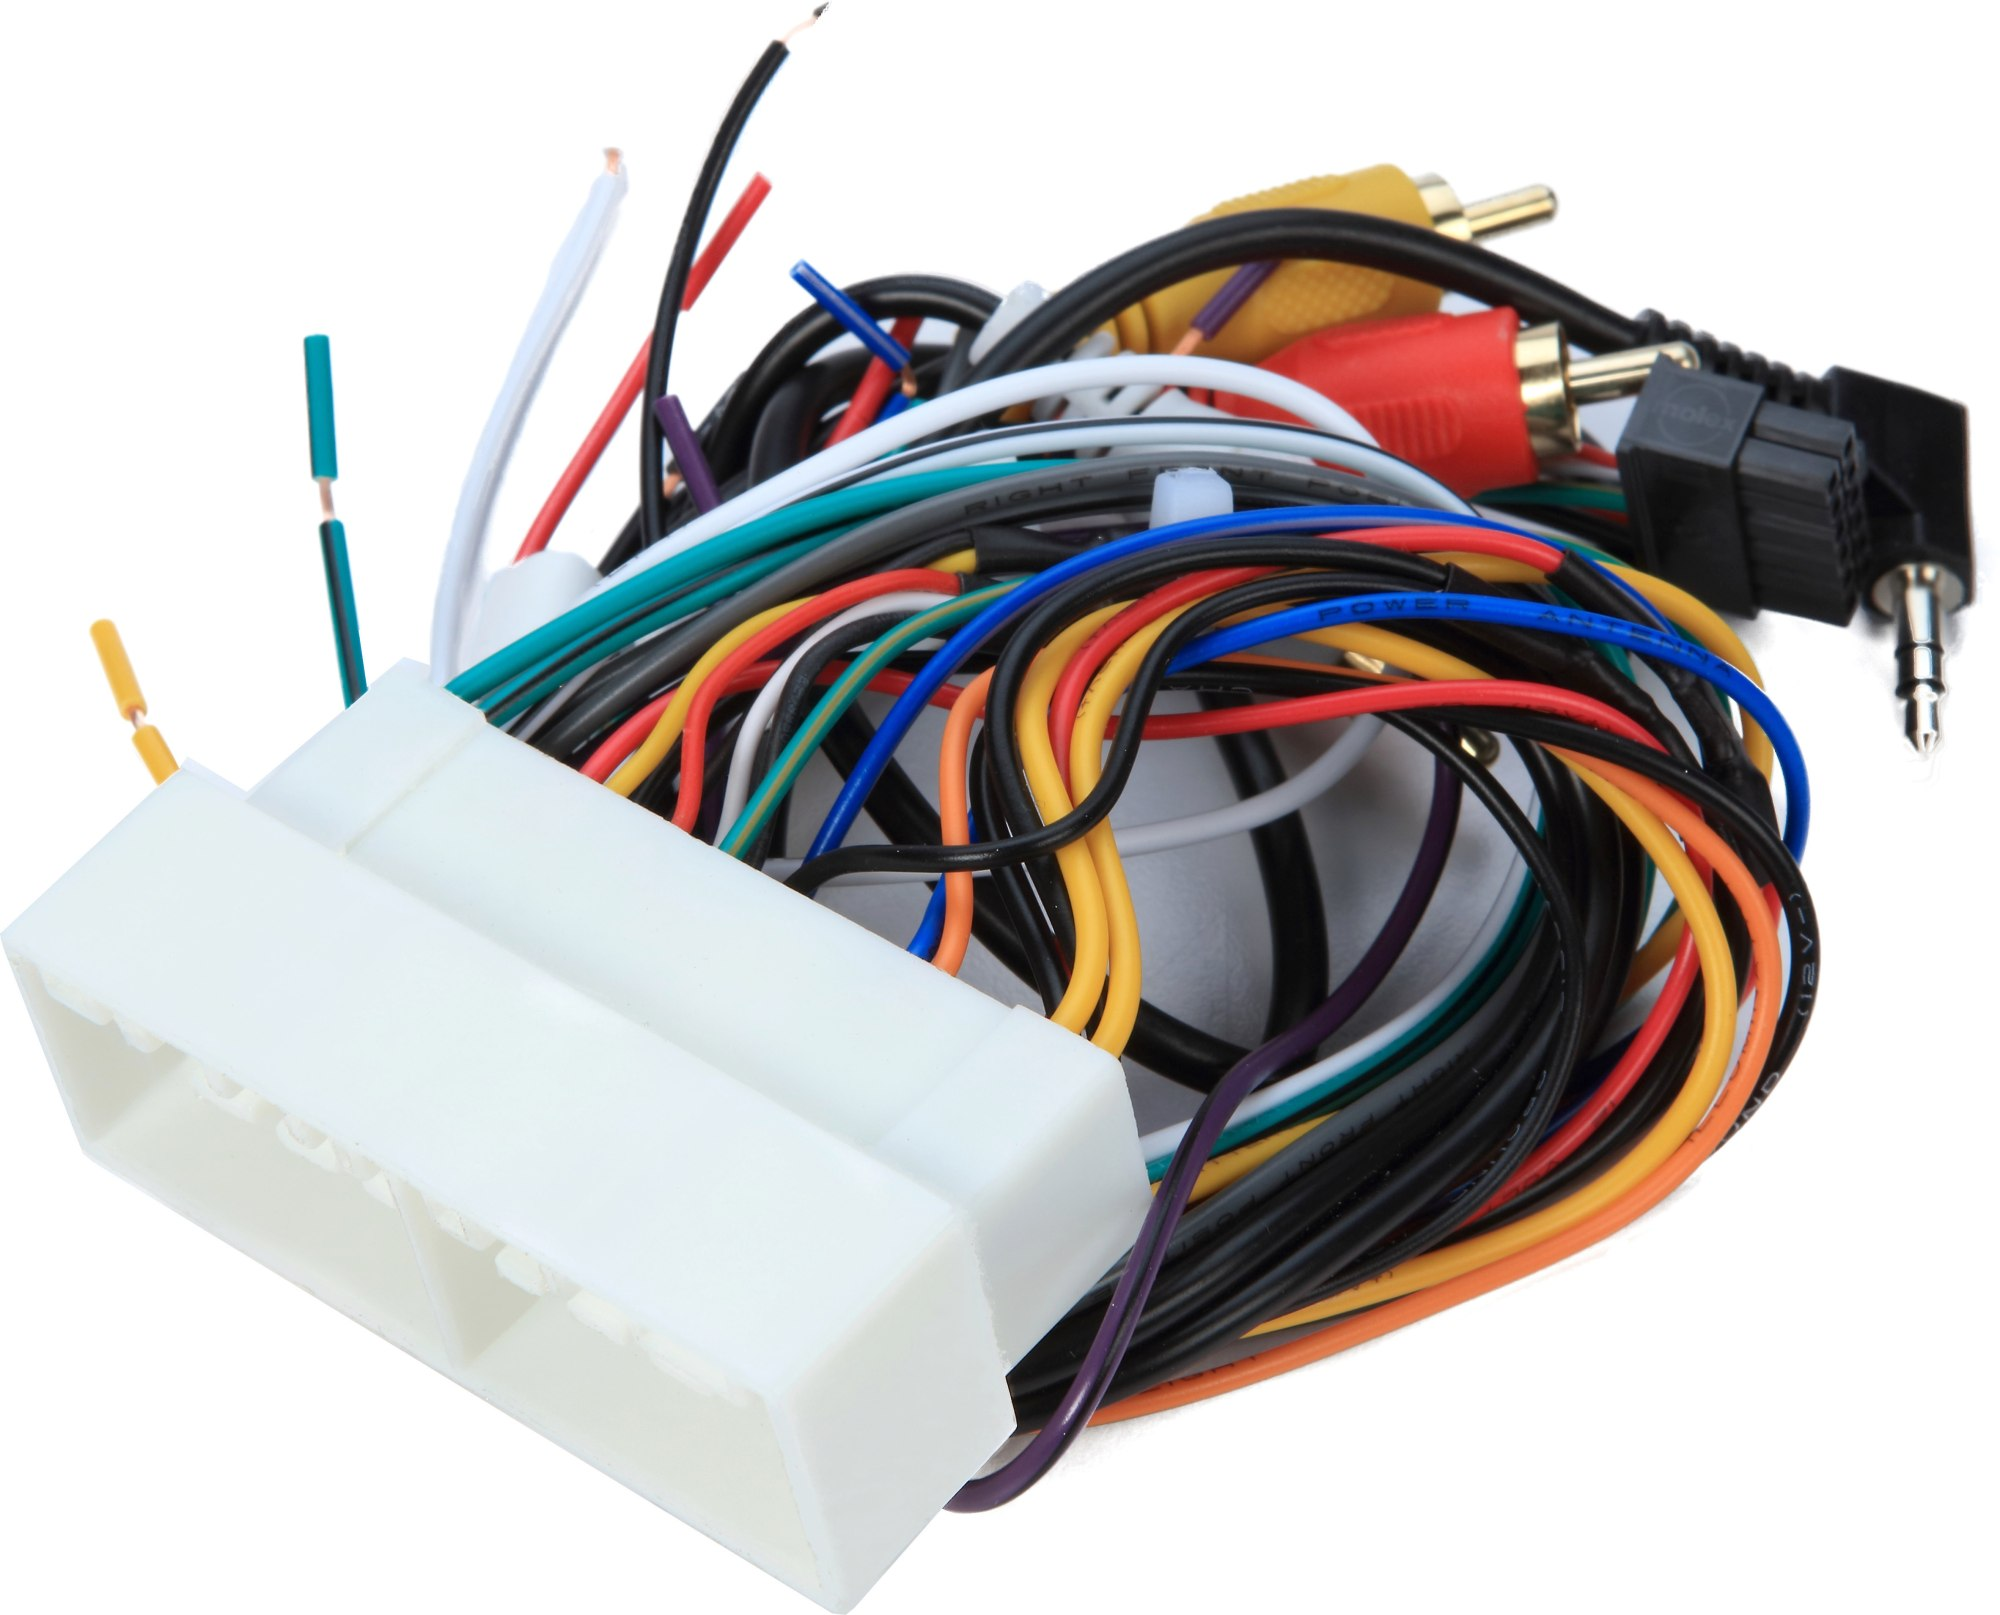 hight resolution of metra 70 7306 receiver wiring harness connect a new car stereo in select 2017 up hyundai and kia vehicles at crutchfield com